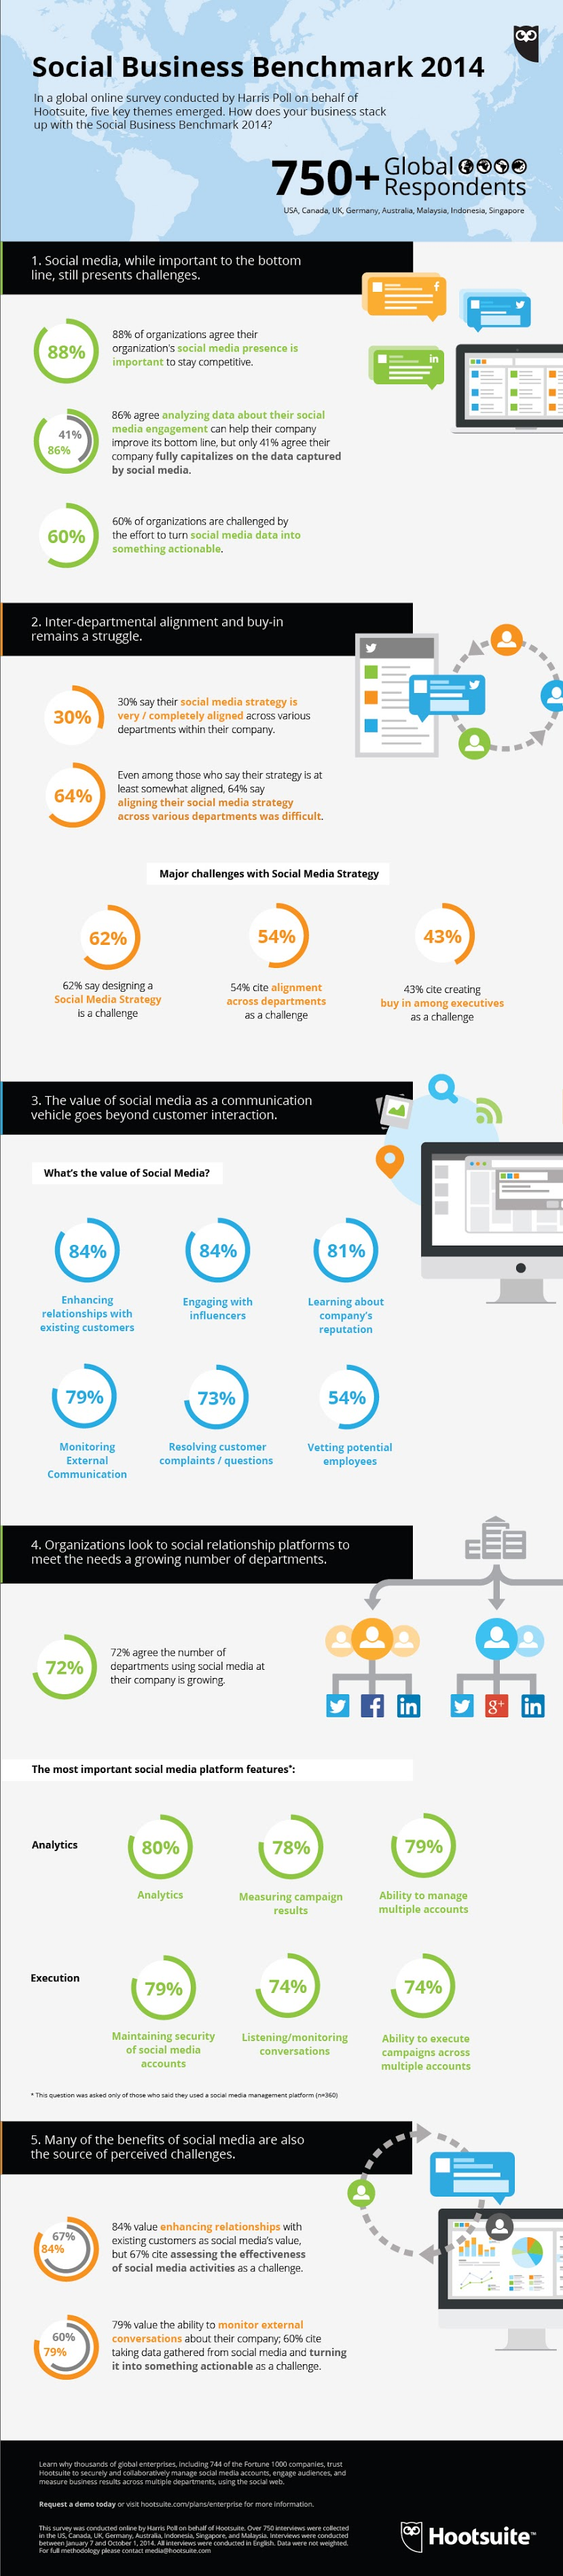 social-business-benchmark-infographic